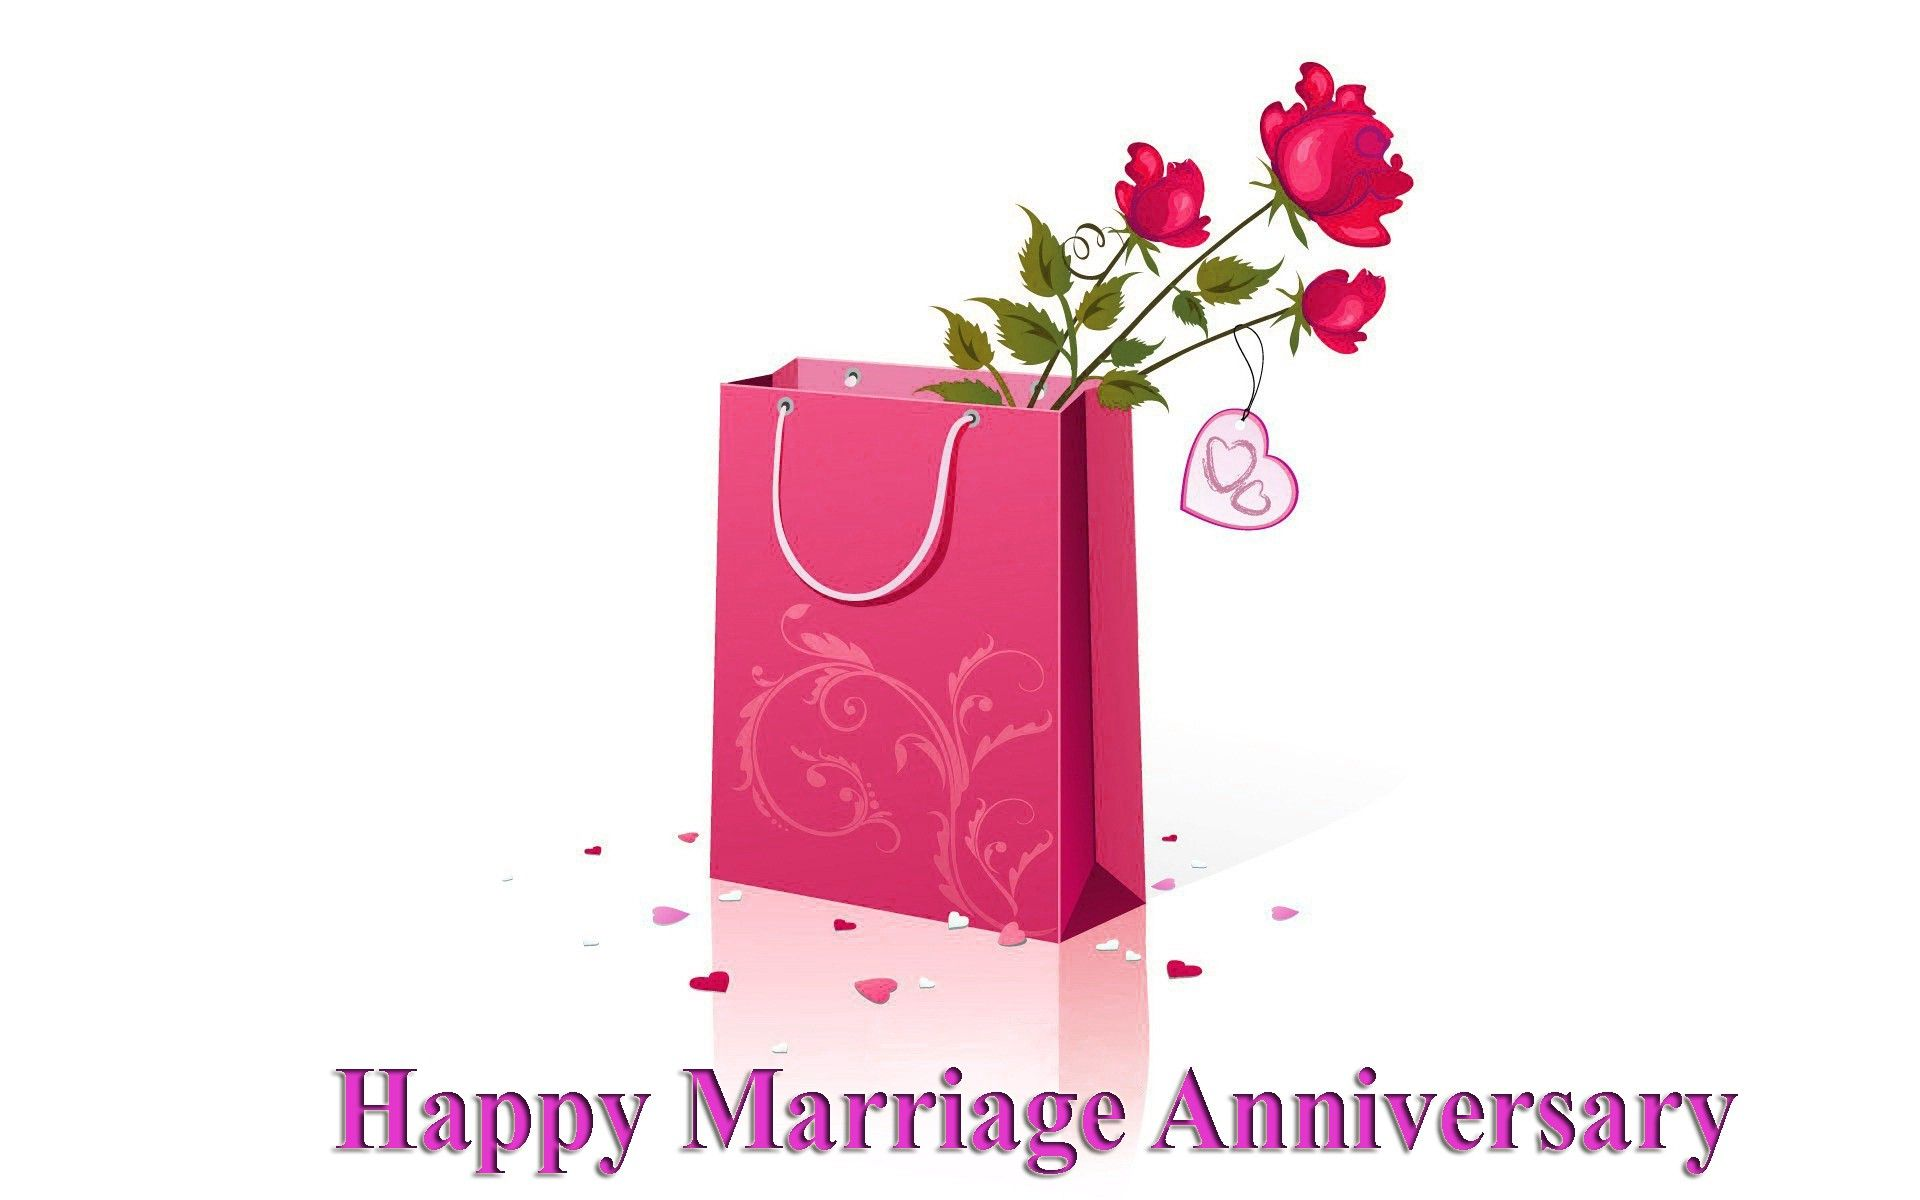 Anniversary Wallpaper & Backgrounds | Wedding Anniversary gifts HD ...